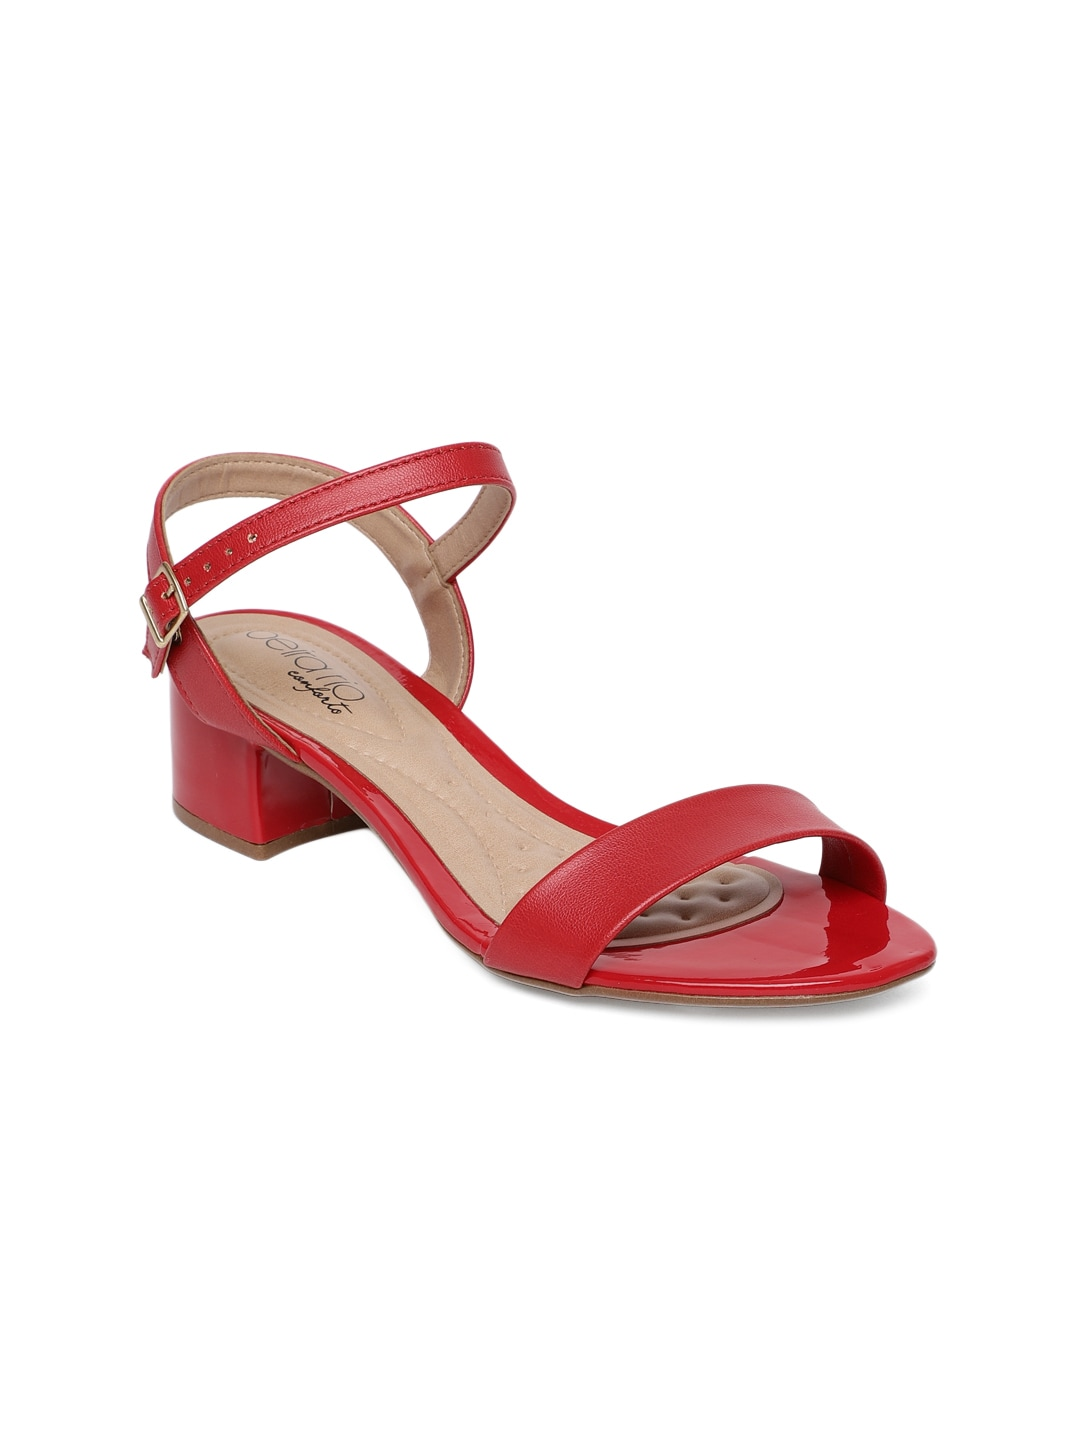 a2a56d59080 Red Heels - Buy Red Heels Online in India